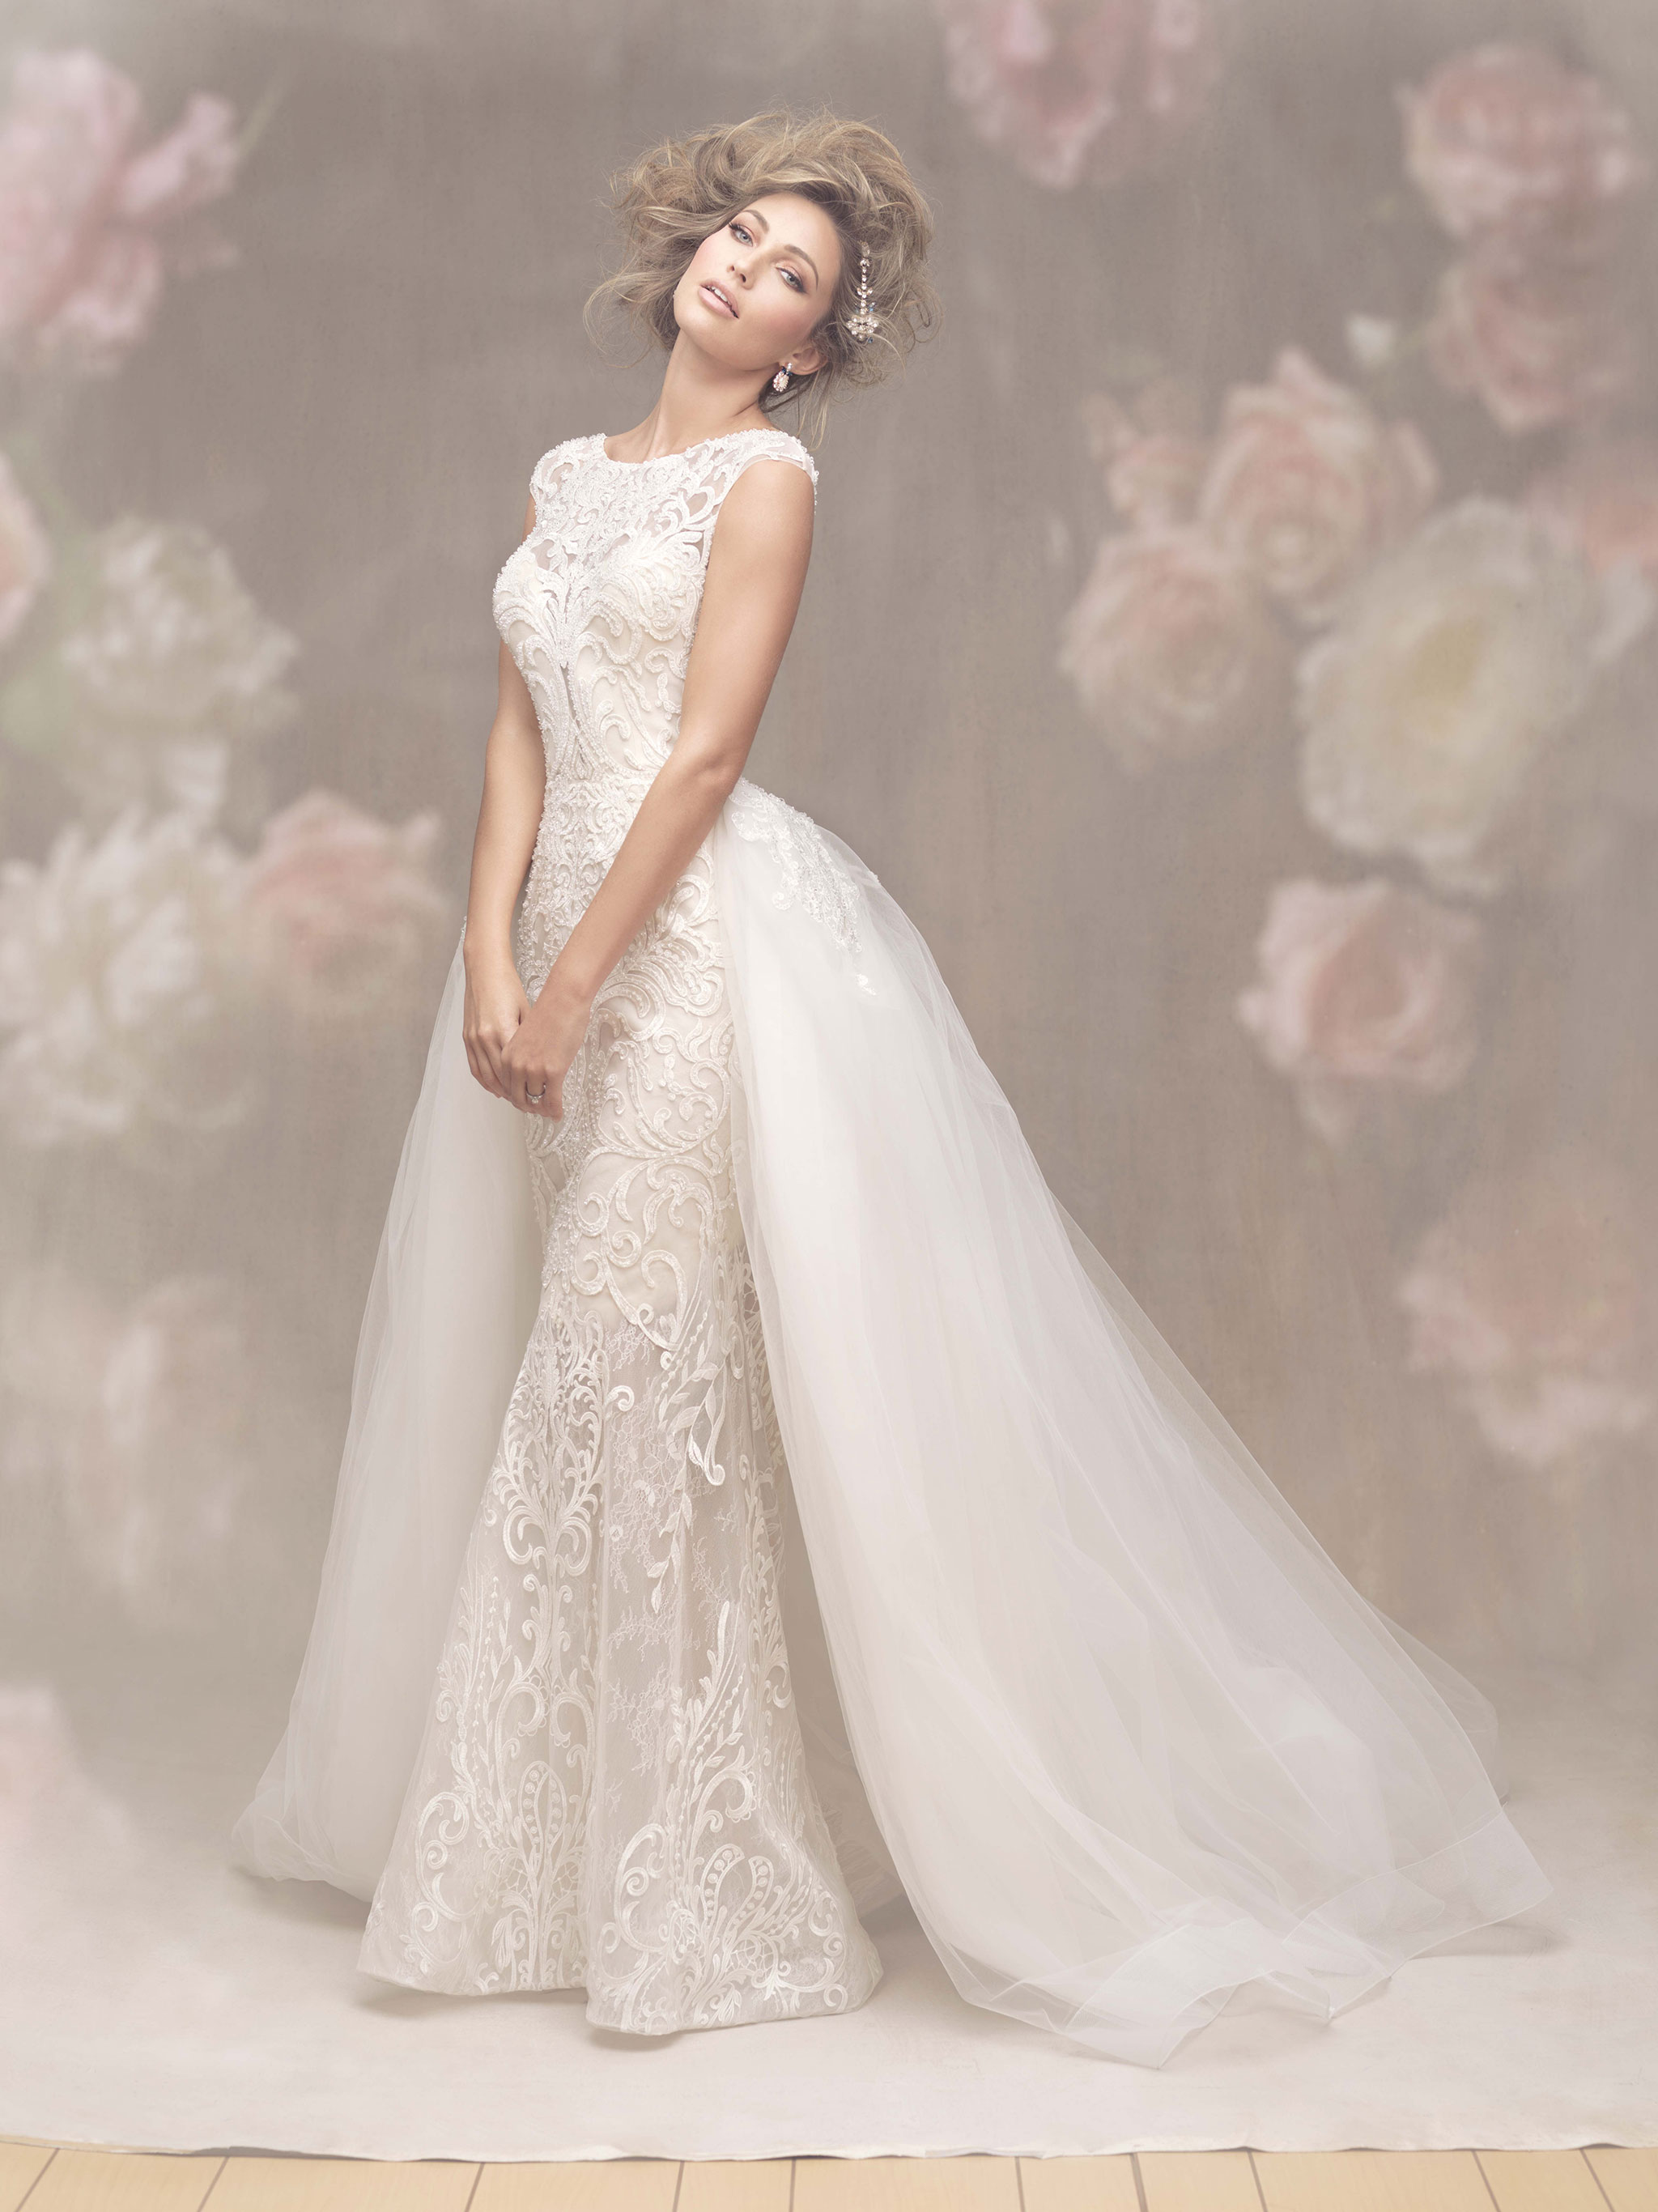 e8c6031028 Bridal Novias is committed to being the bridal shop with the best service  and value. Offering our brides…